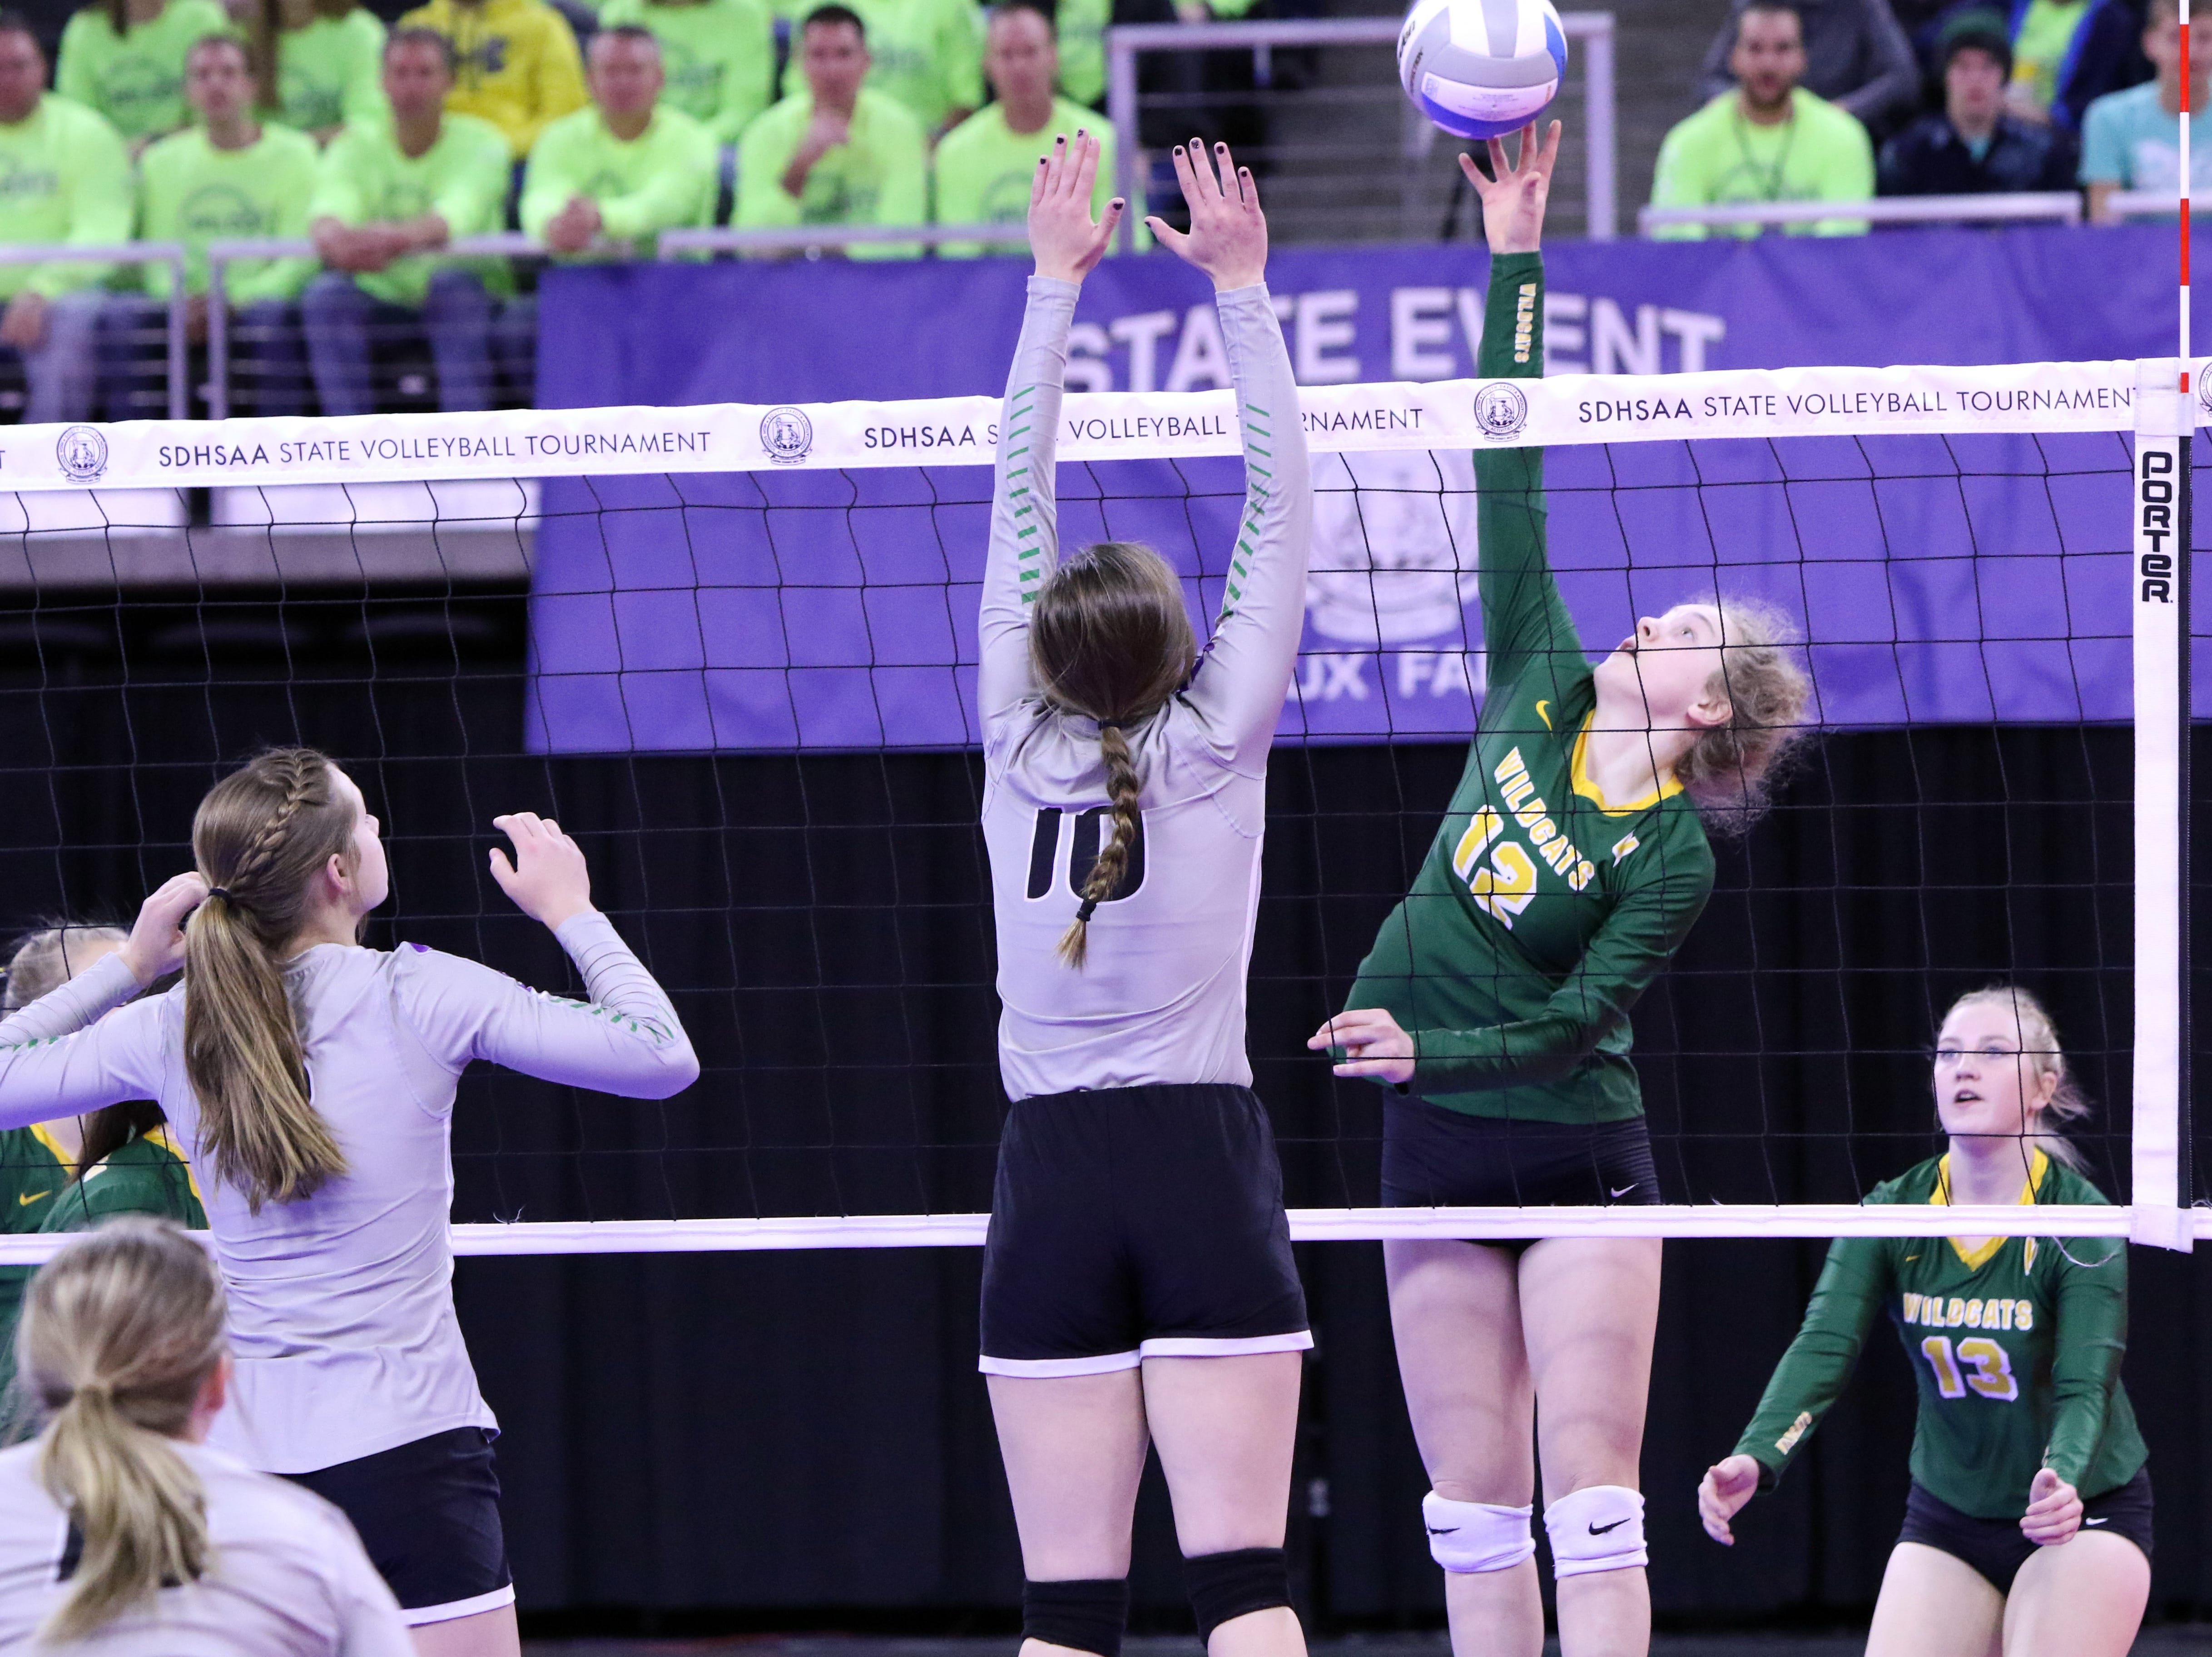 Sydney Schell of Northwestern tips the ball past the defense by Dani Deffenbaugh of Kimball-White Lake during Thursday afternoon's matches in Sioux Falls.